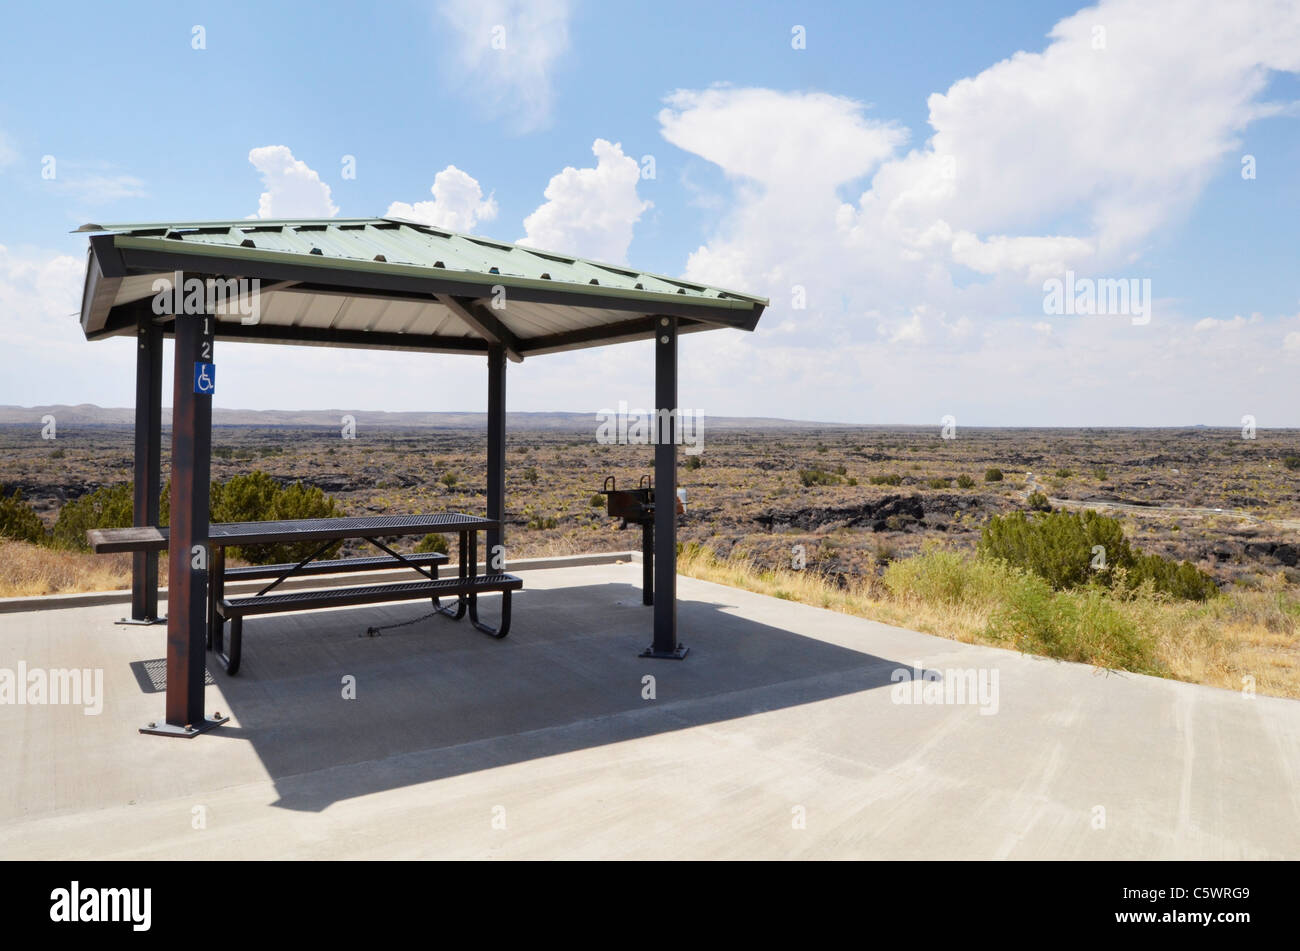 Picnic shelter and area on a lookout over the New Mexico landscape - Stock Image